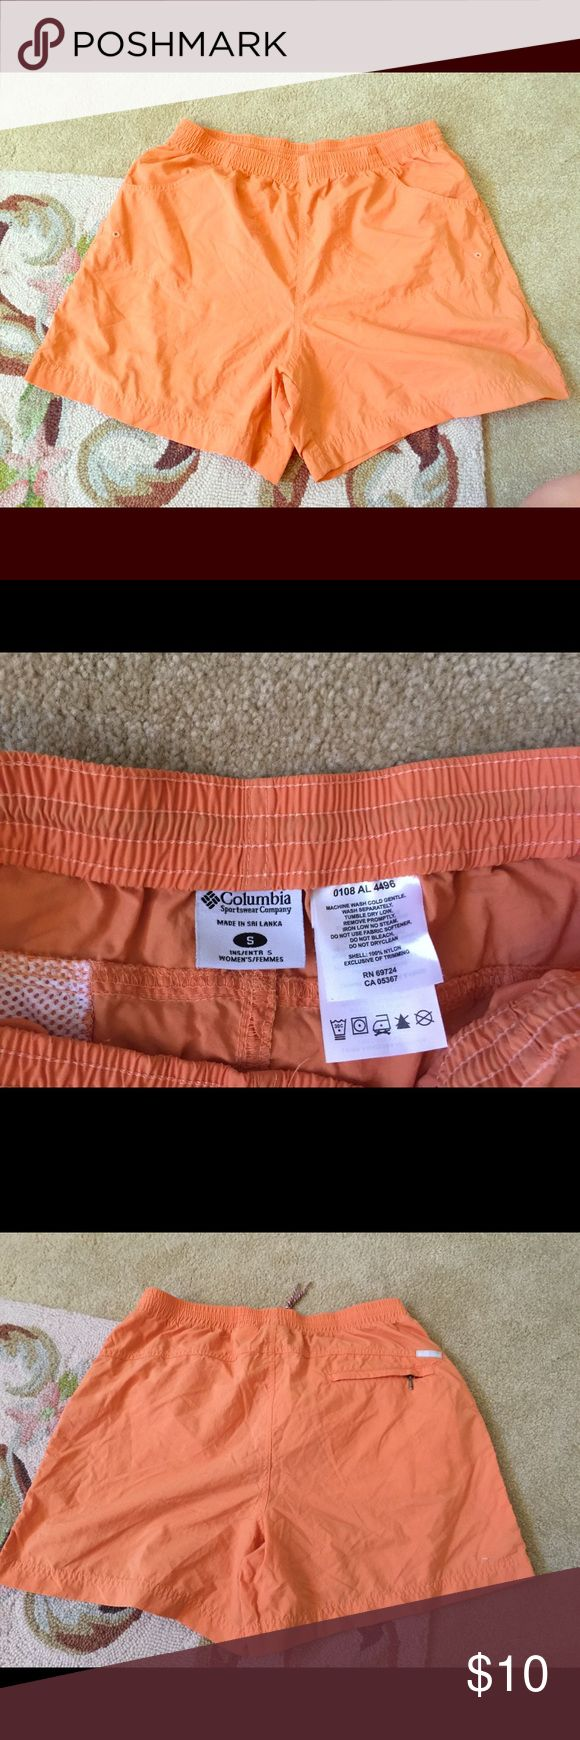 Women's Columbia fishing shorts small EUC only worn a couple of times. Purchased at Academy in 2010. Very comfy fishing shorts with pockets. Columbia Shorts